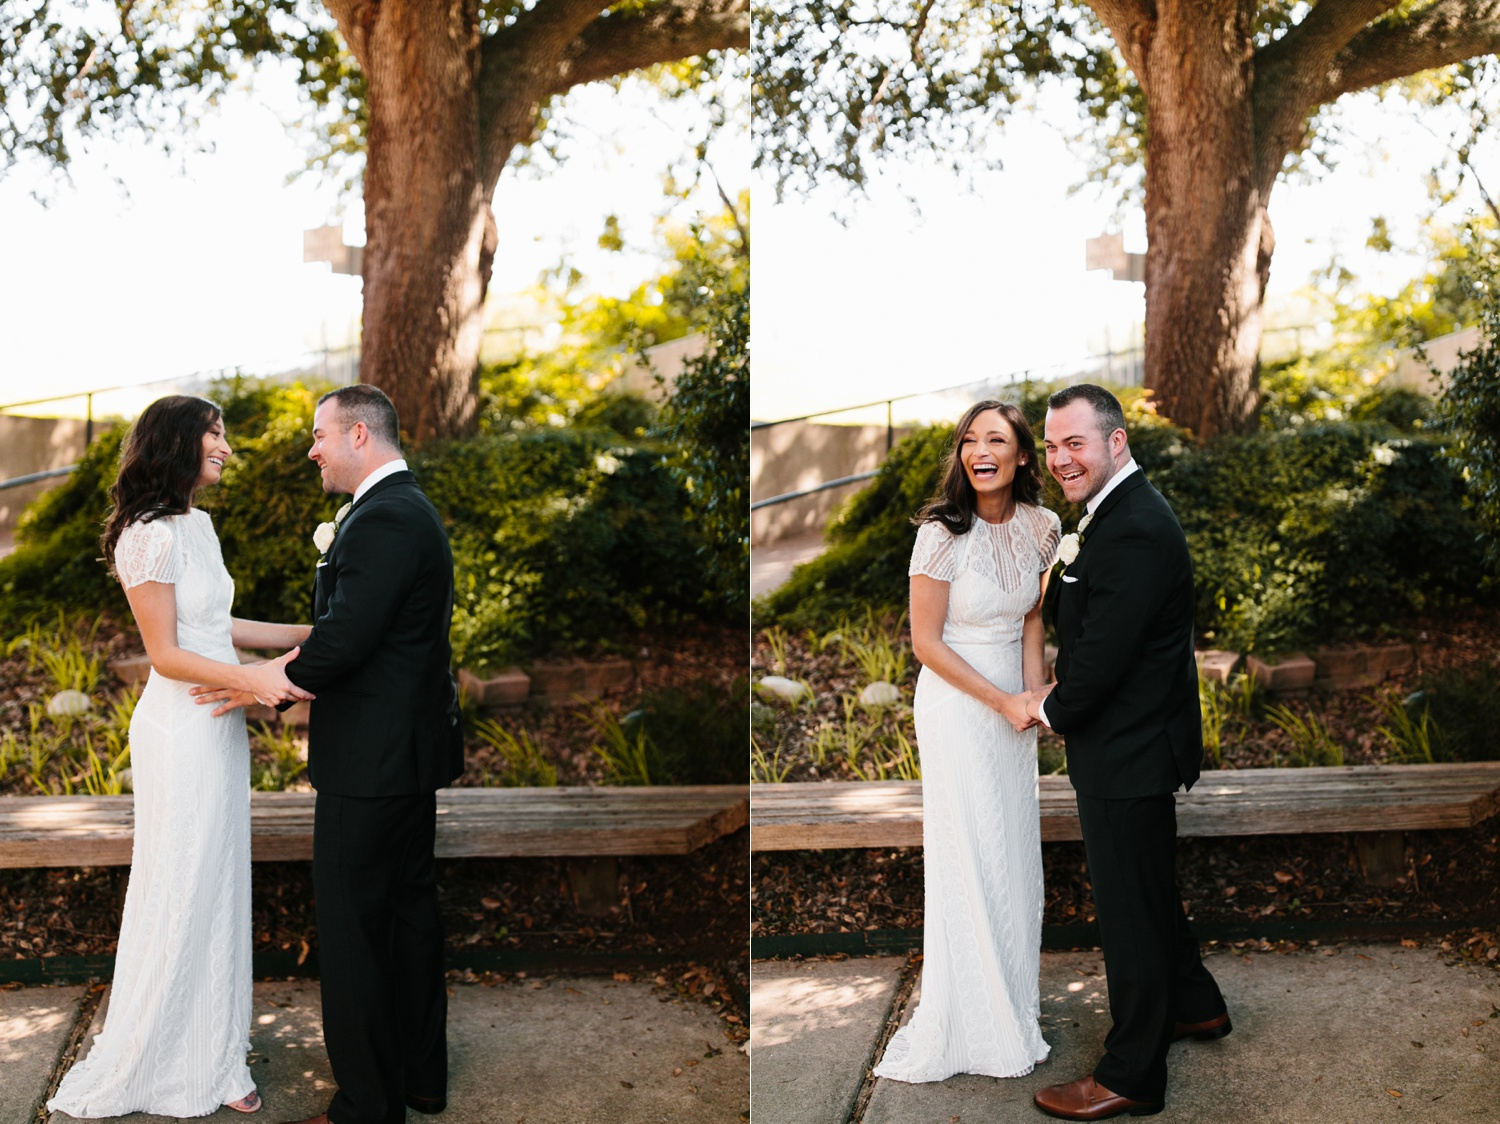 Kadee + Tyler | a raw, emotional wedding at the Filter Building on White Rock Lake in Dallas, TX by North Texas Wedding Photographer, Rachel Meagan Photography 074